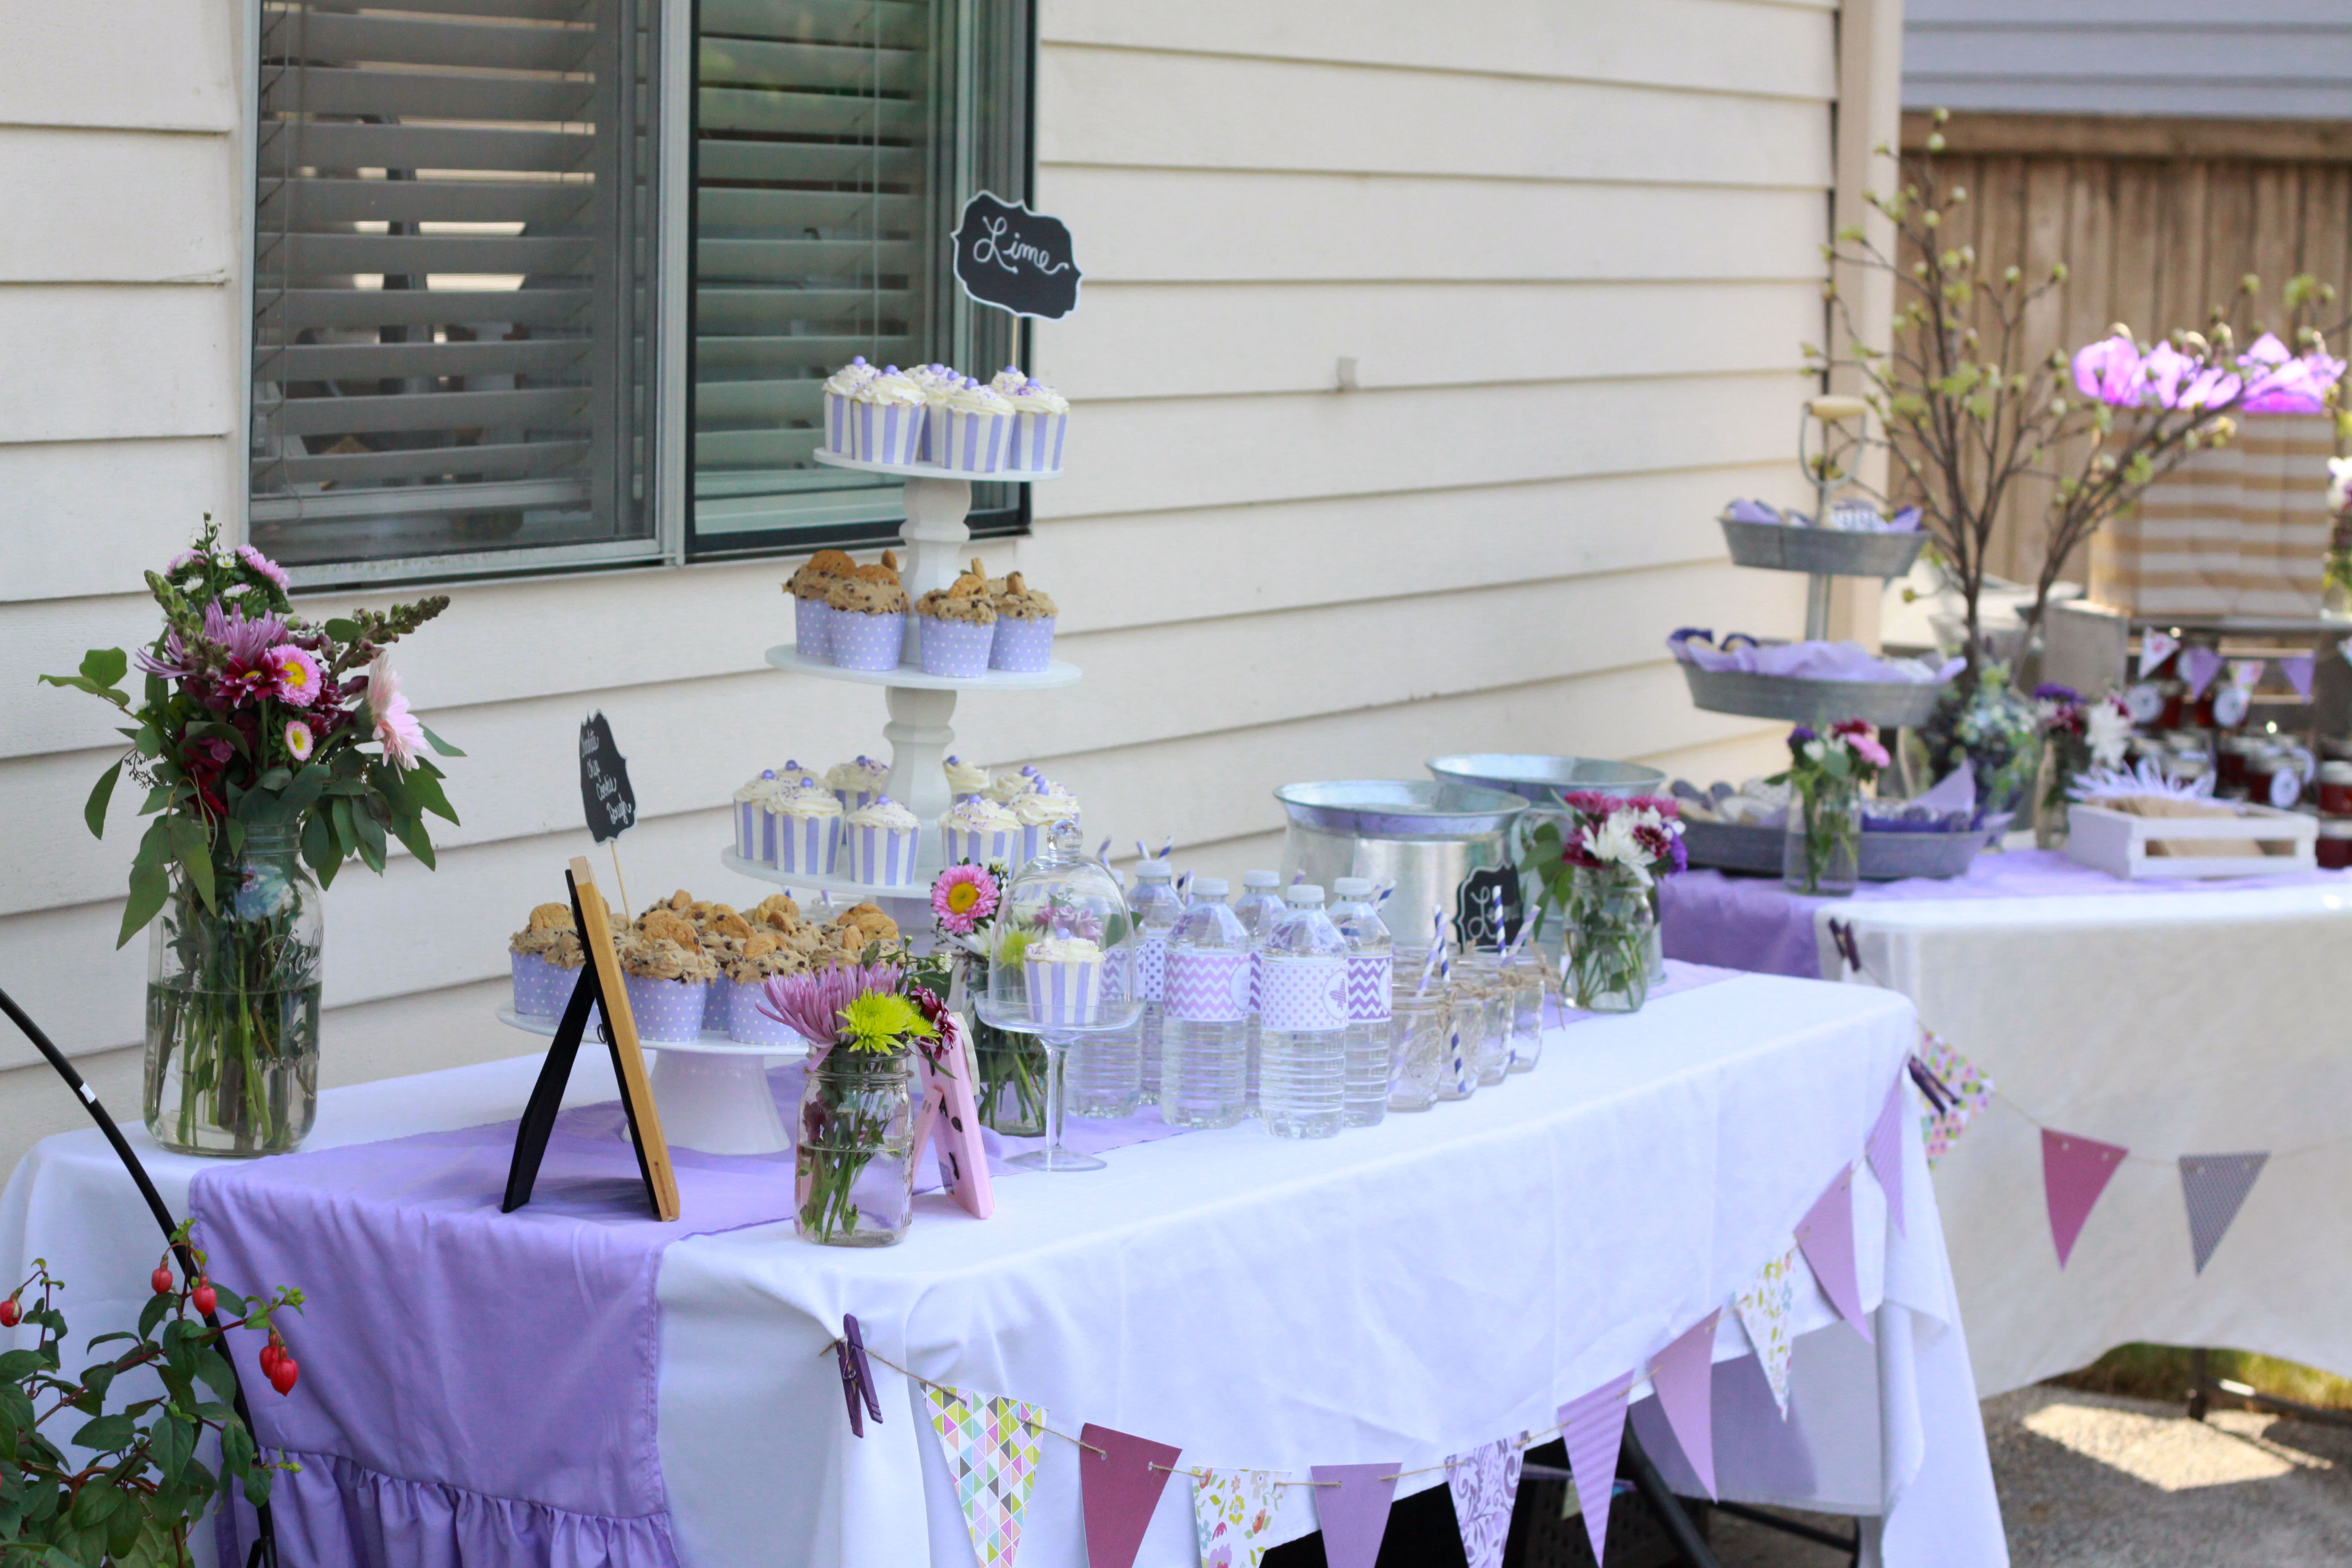 Awesome Lavender Butterfly Baby Shower By 4 Kids Cakes On Everyday Party Magazine